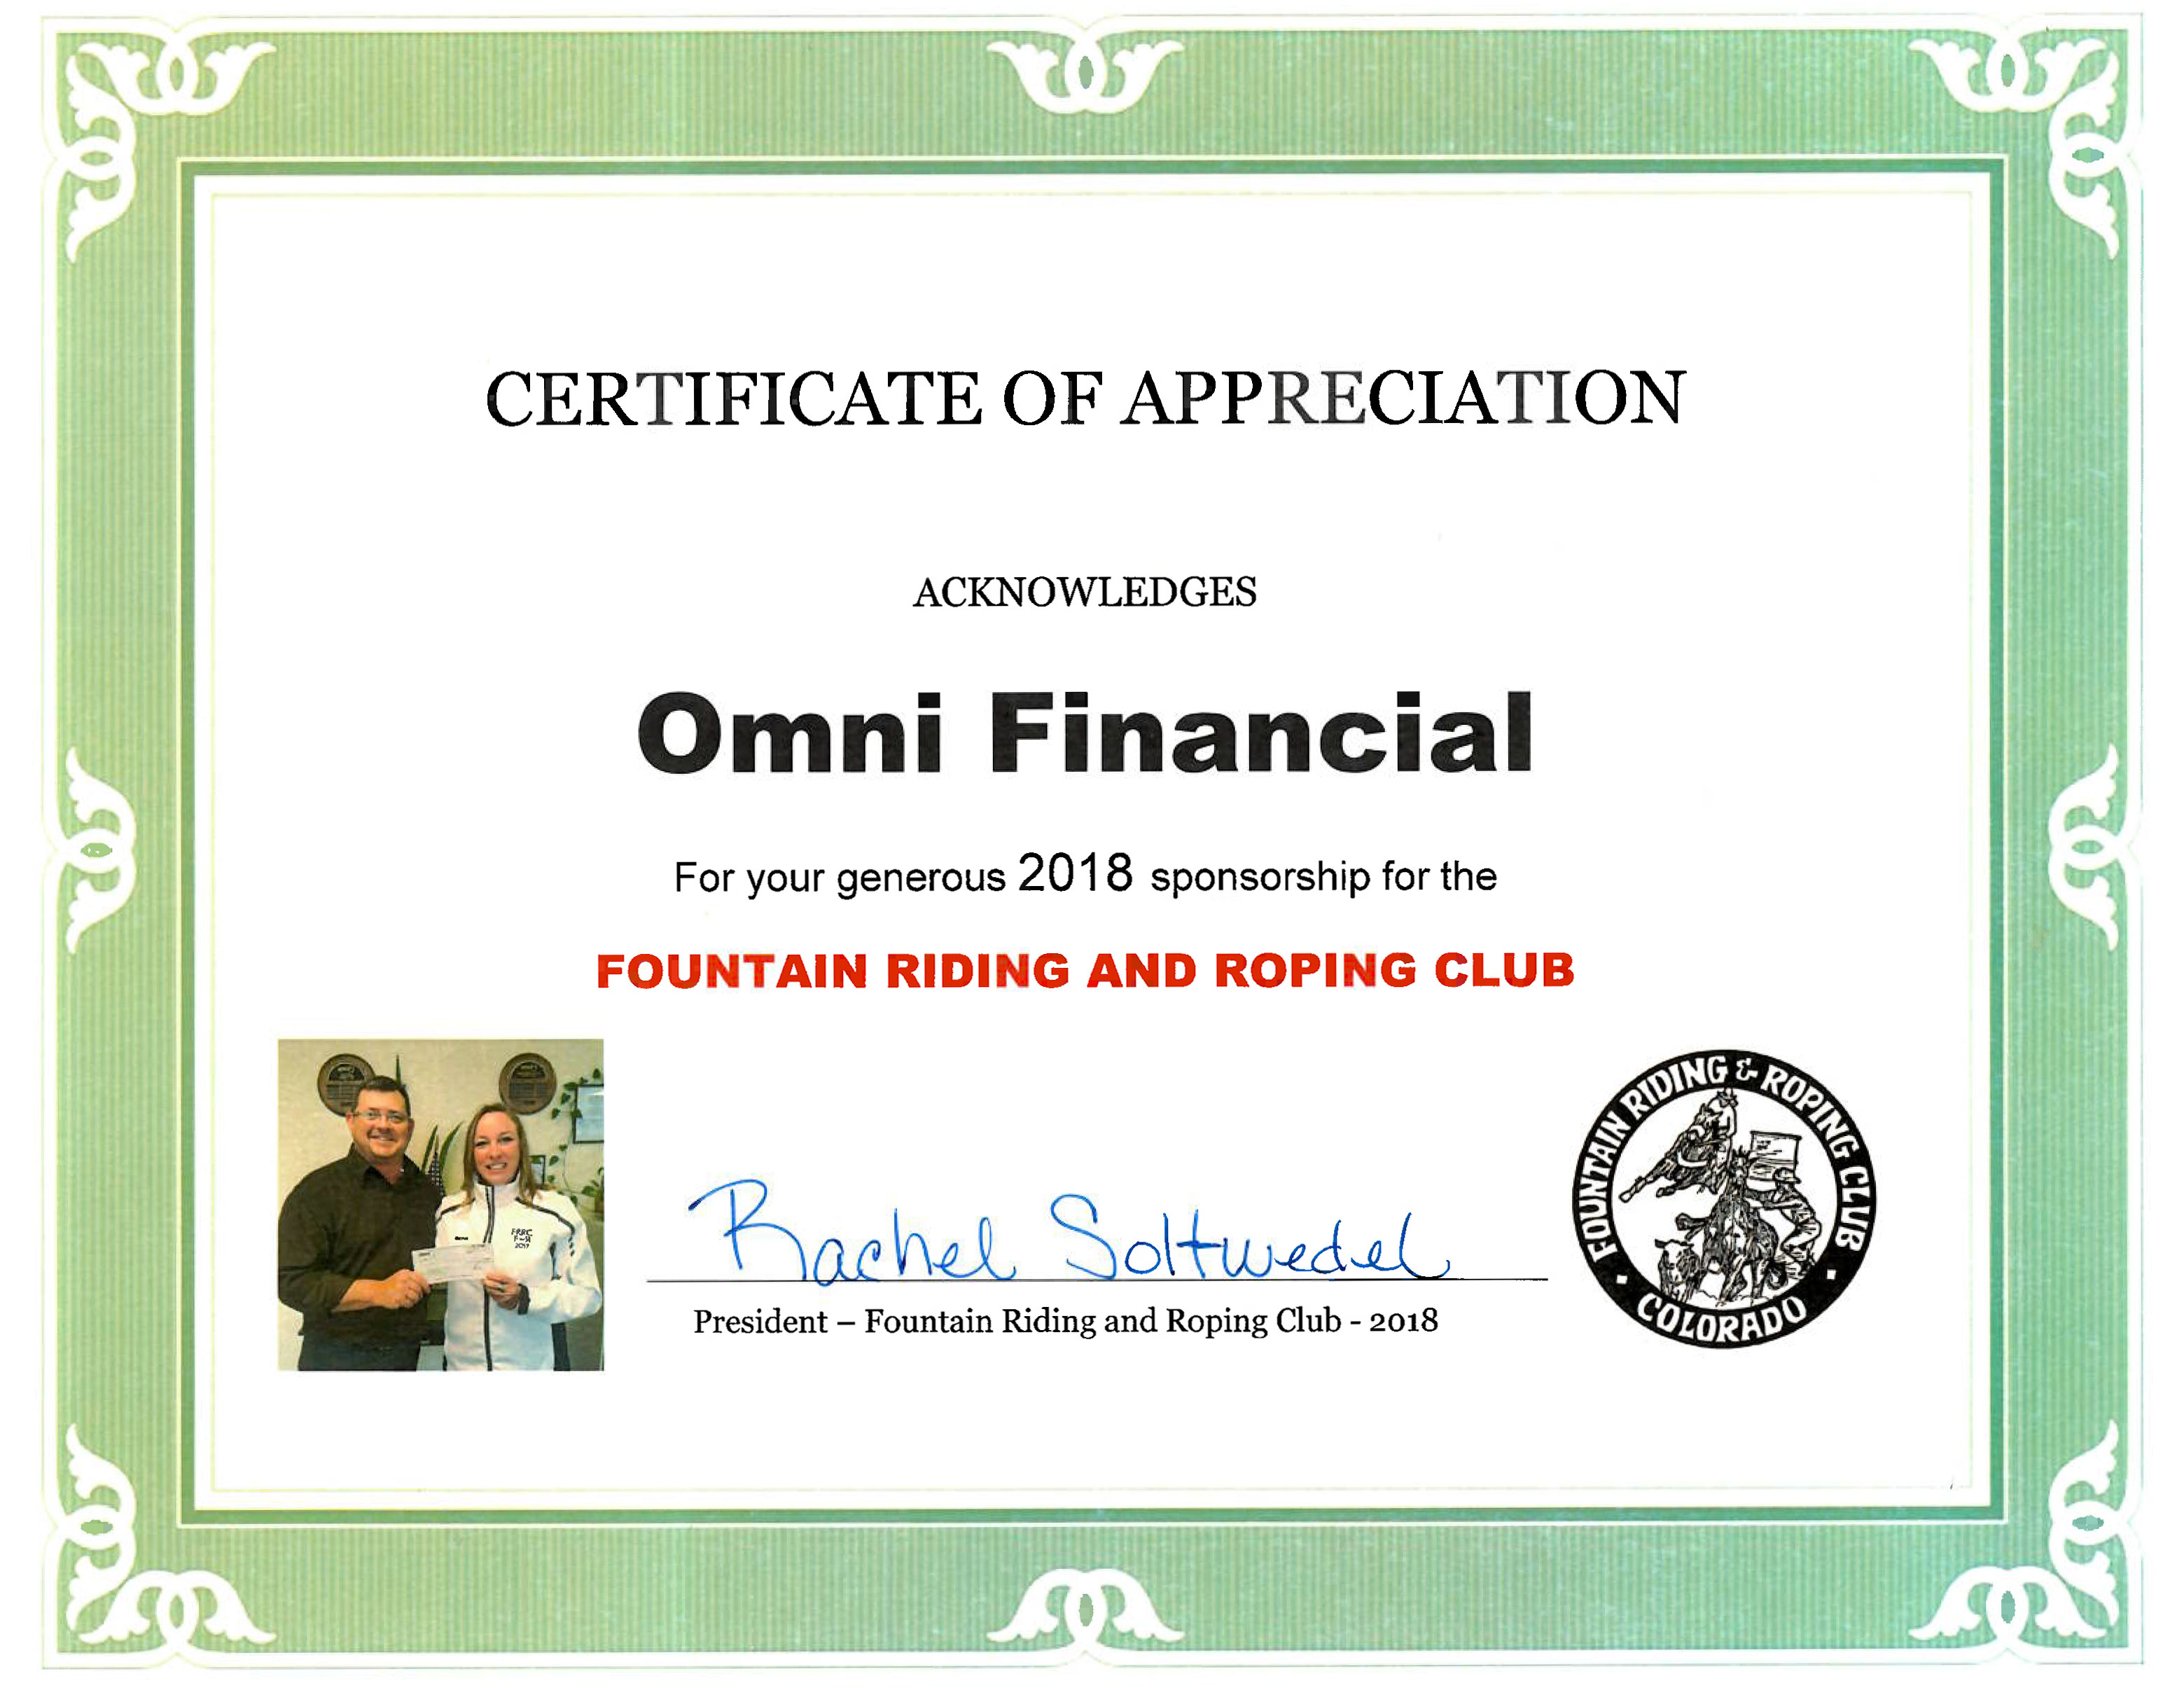 Certificate of Appreciation from the Fountain Roping and Riding Club in Colorado Springs given to Omni Financial